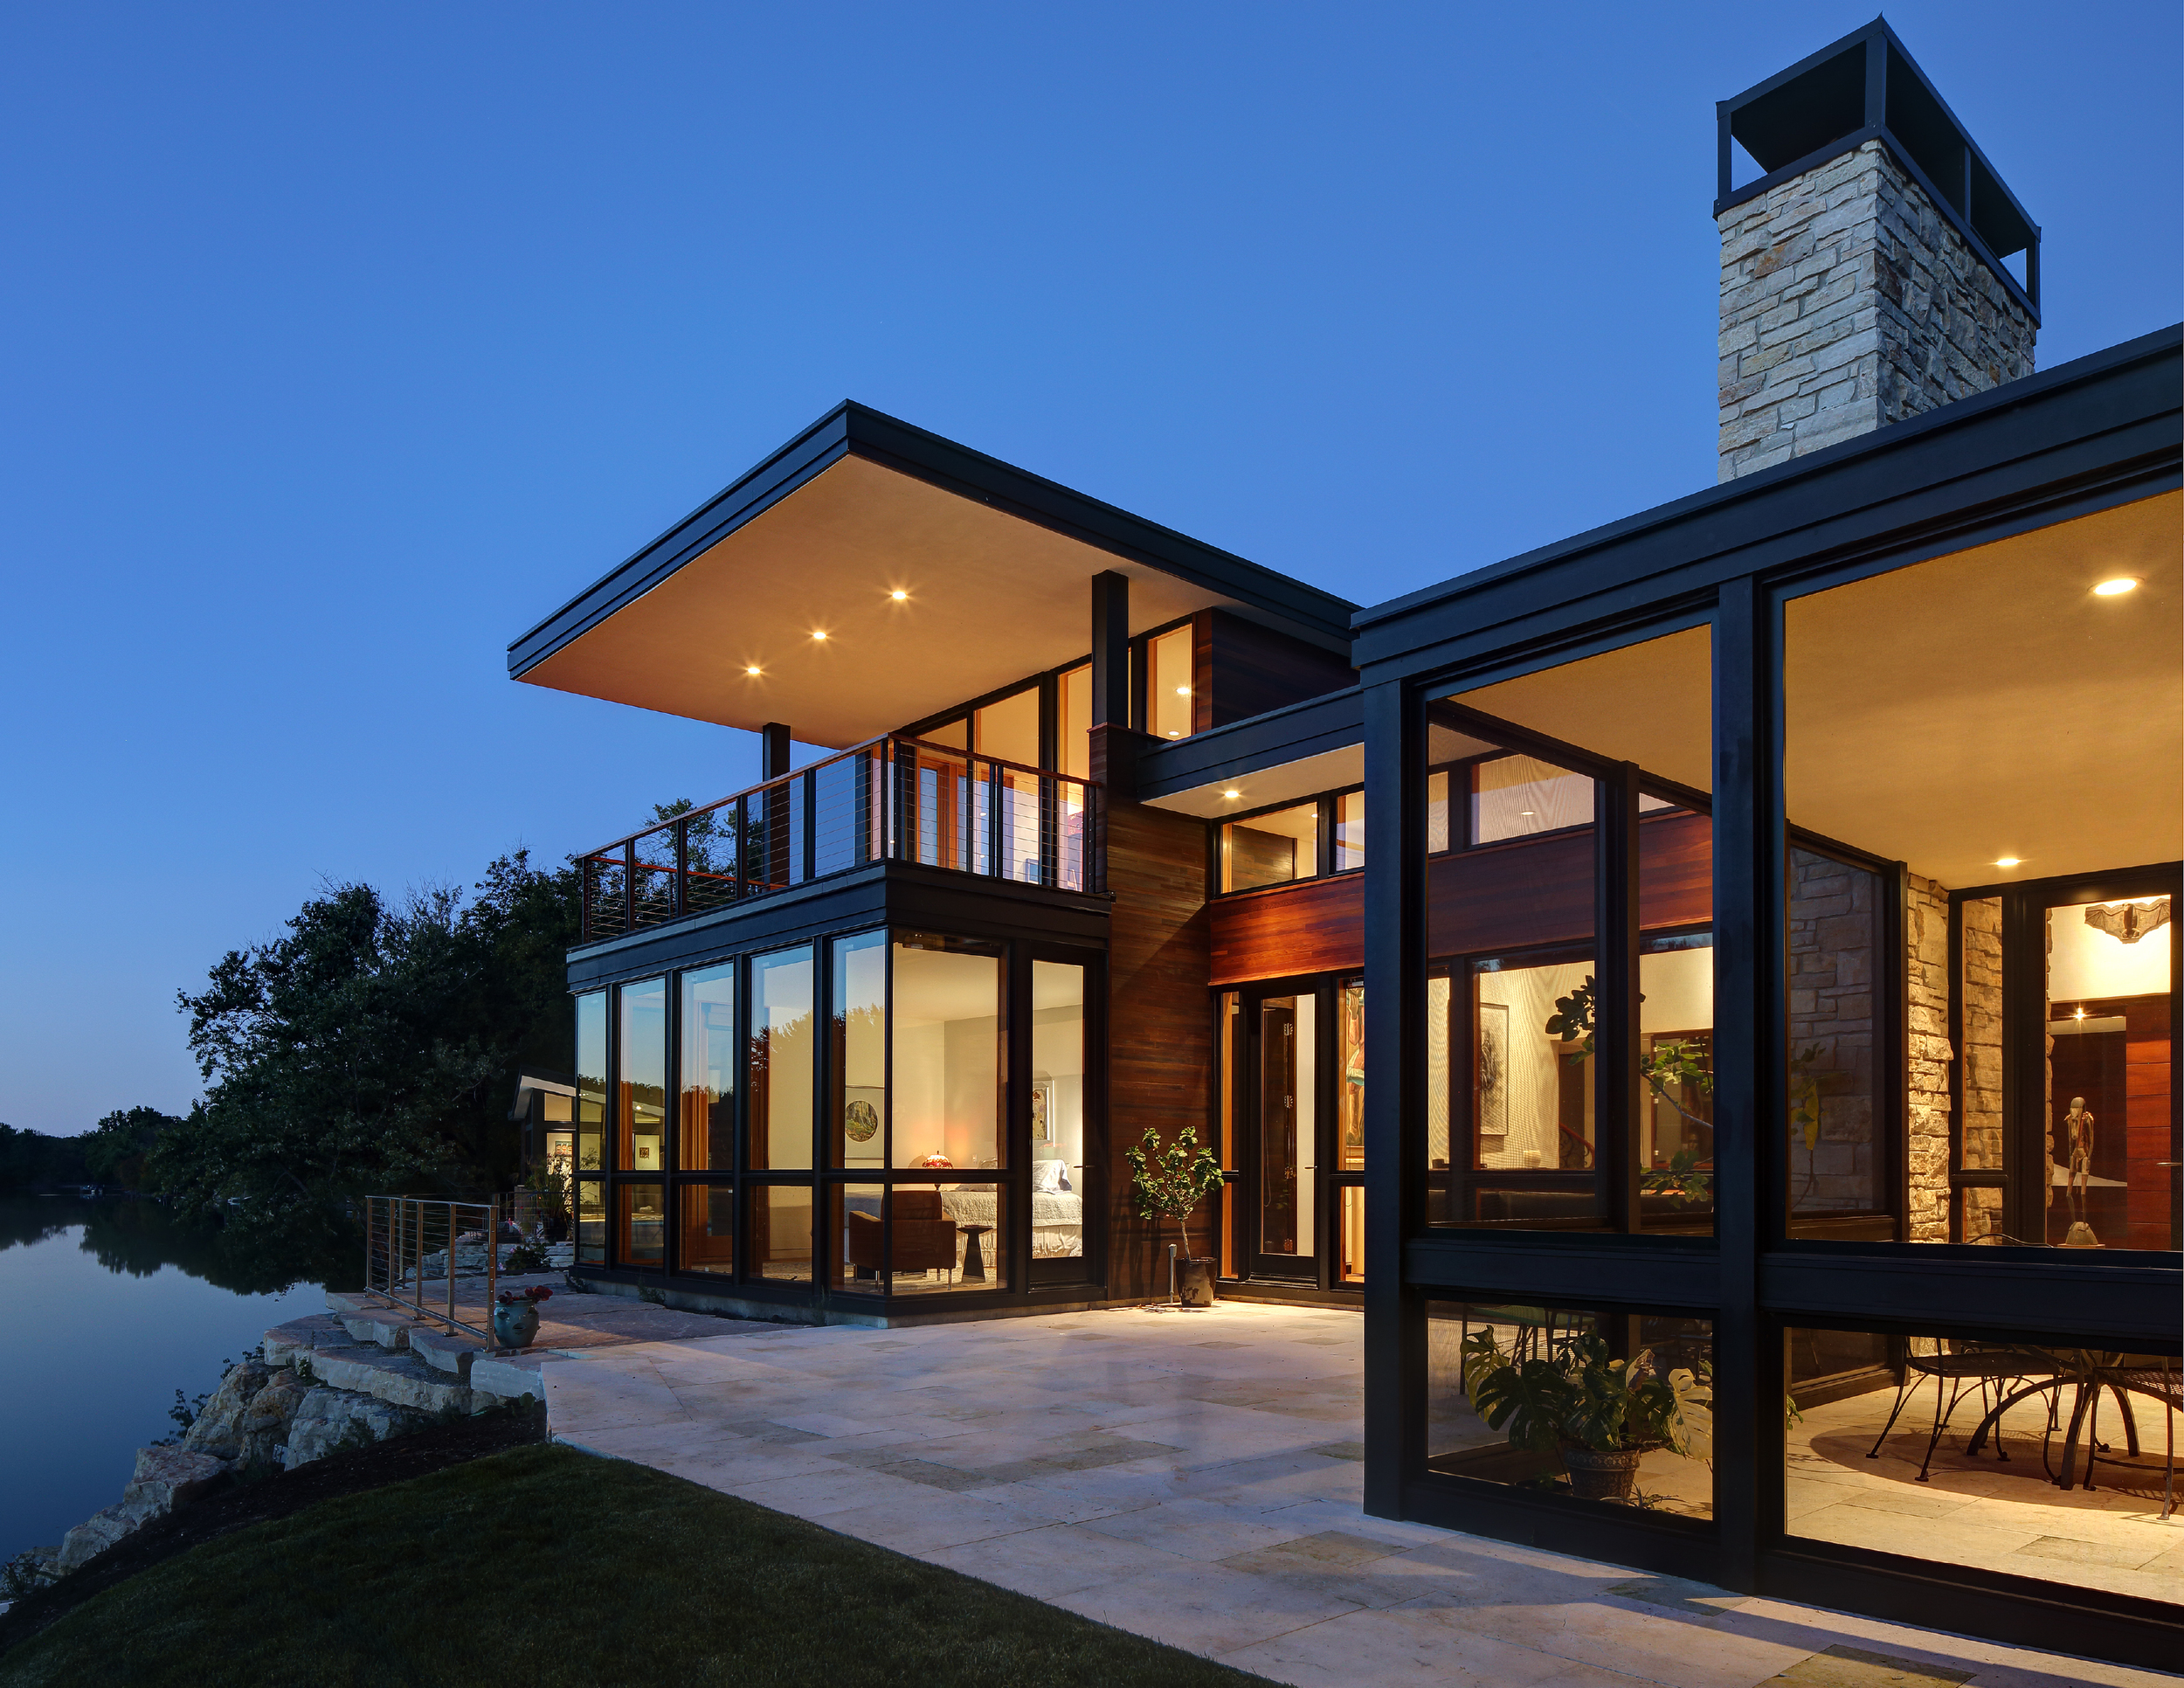 Wisconsin Architect 1000 Images About Art Circuit Bending On Pinterest Rock River House